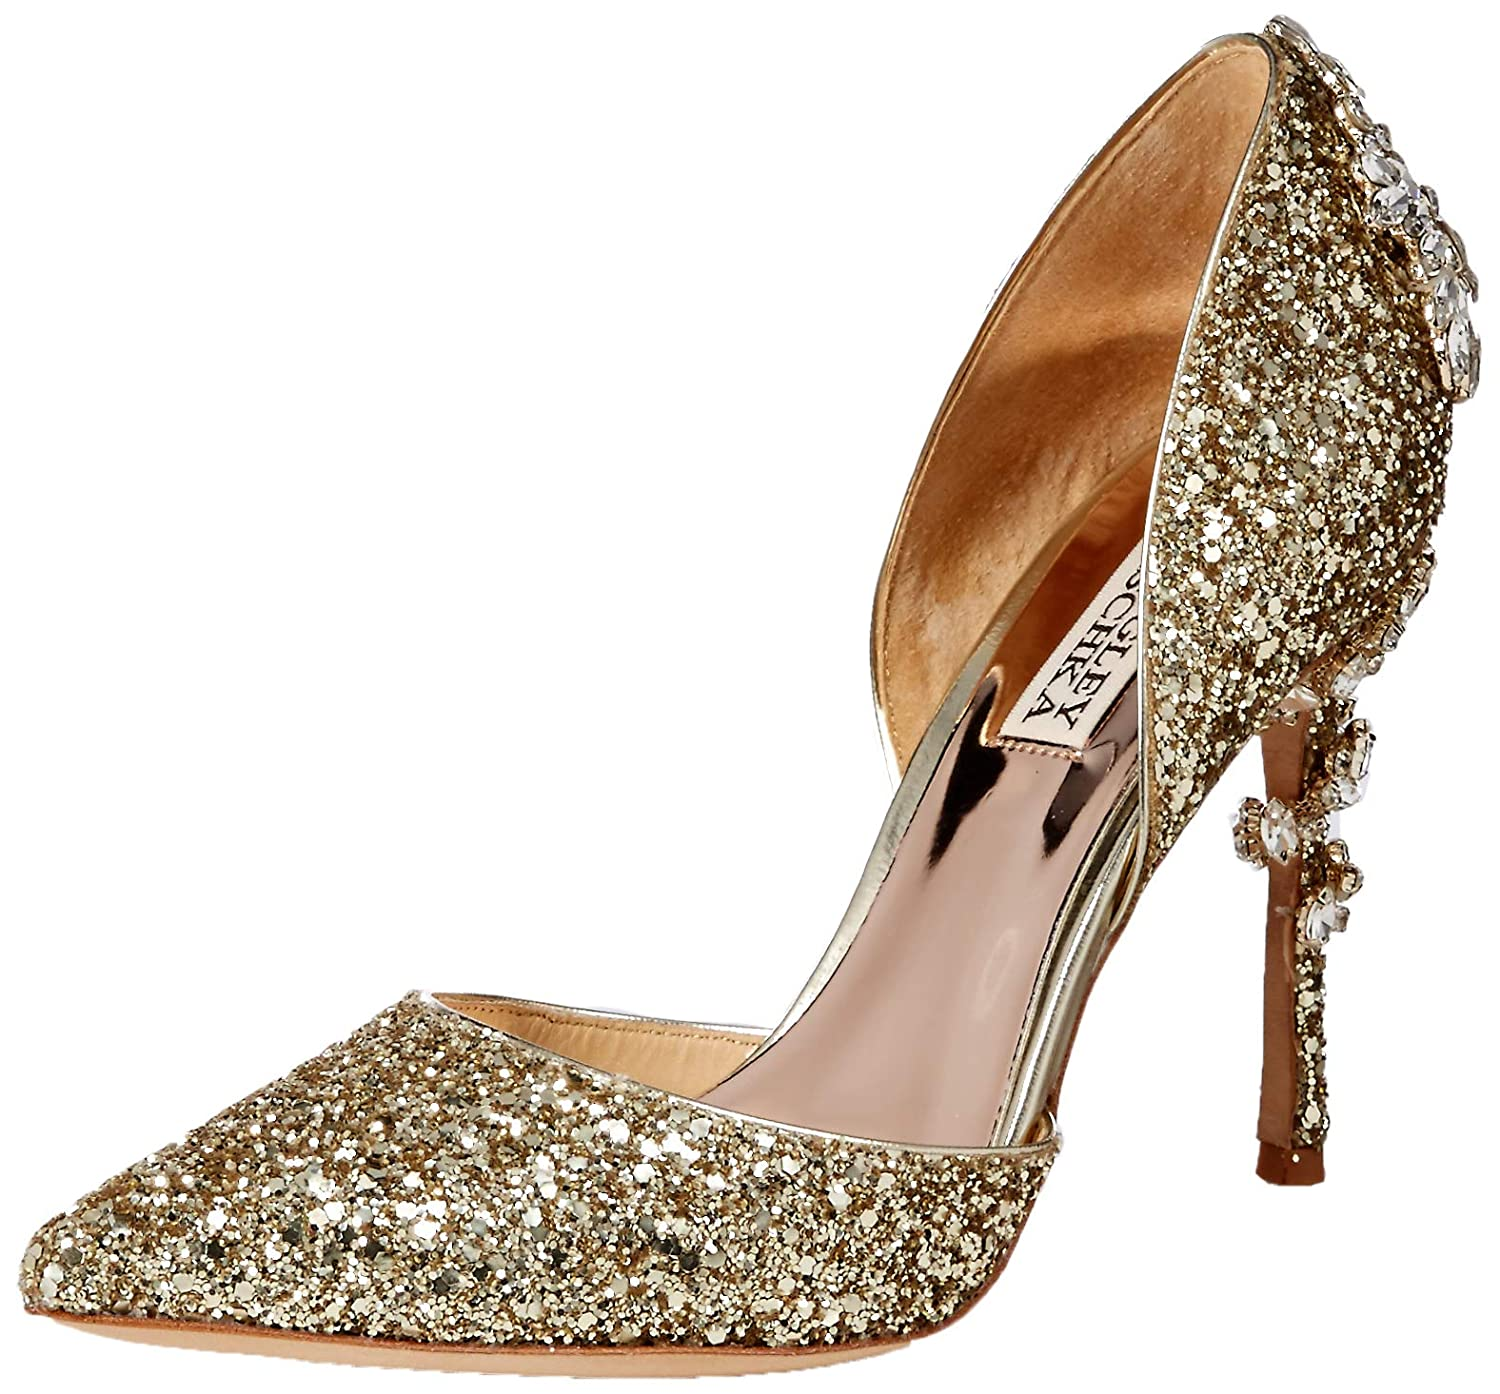 a453823b3572 Amazon.com  Badgley Mischka Women s Vogue Iii Pump  Shoes